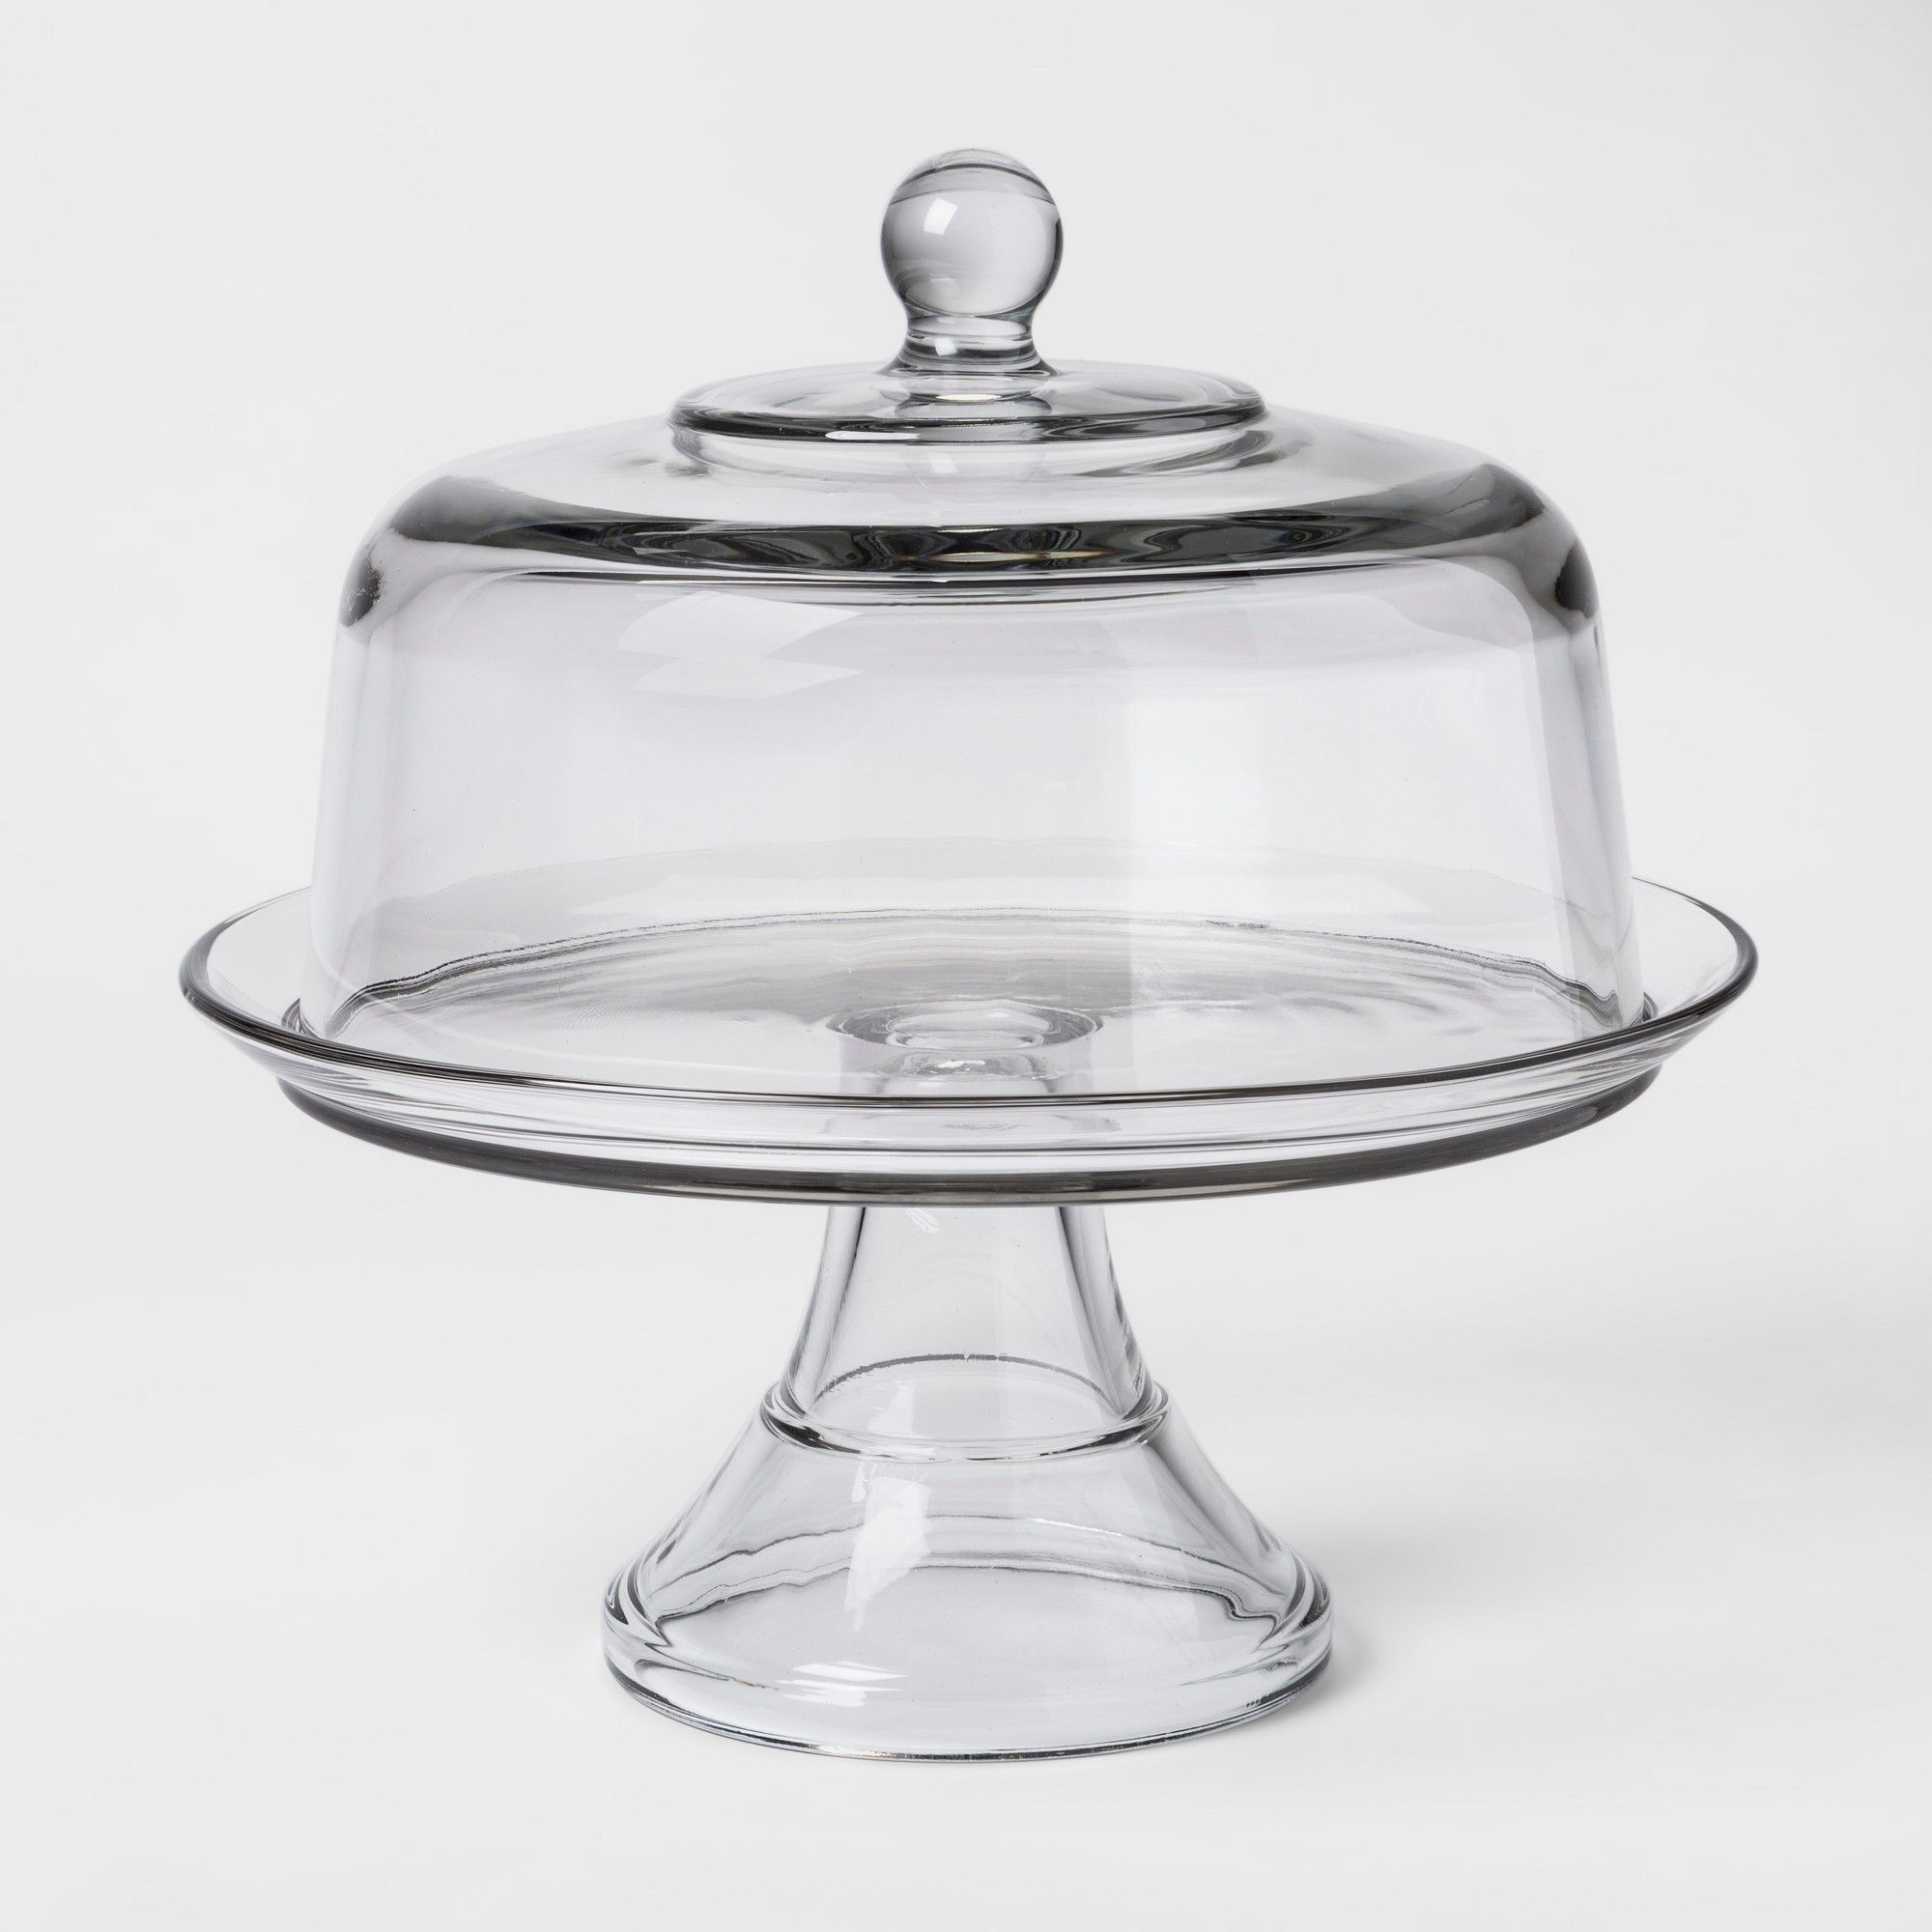 Classic glass cake stand with dome threshold cake